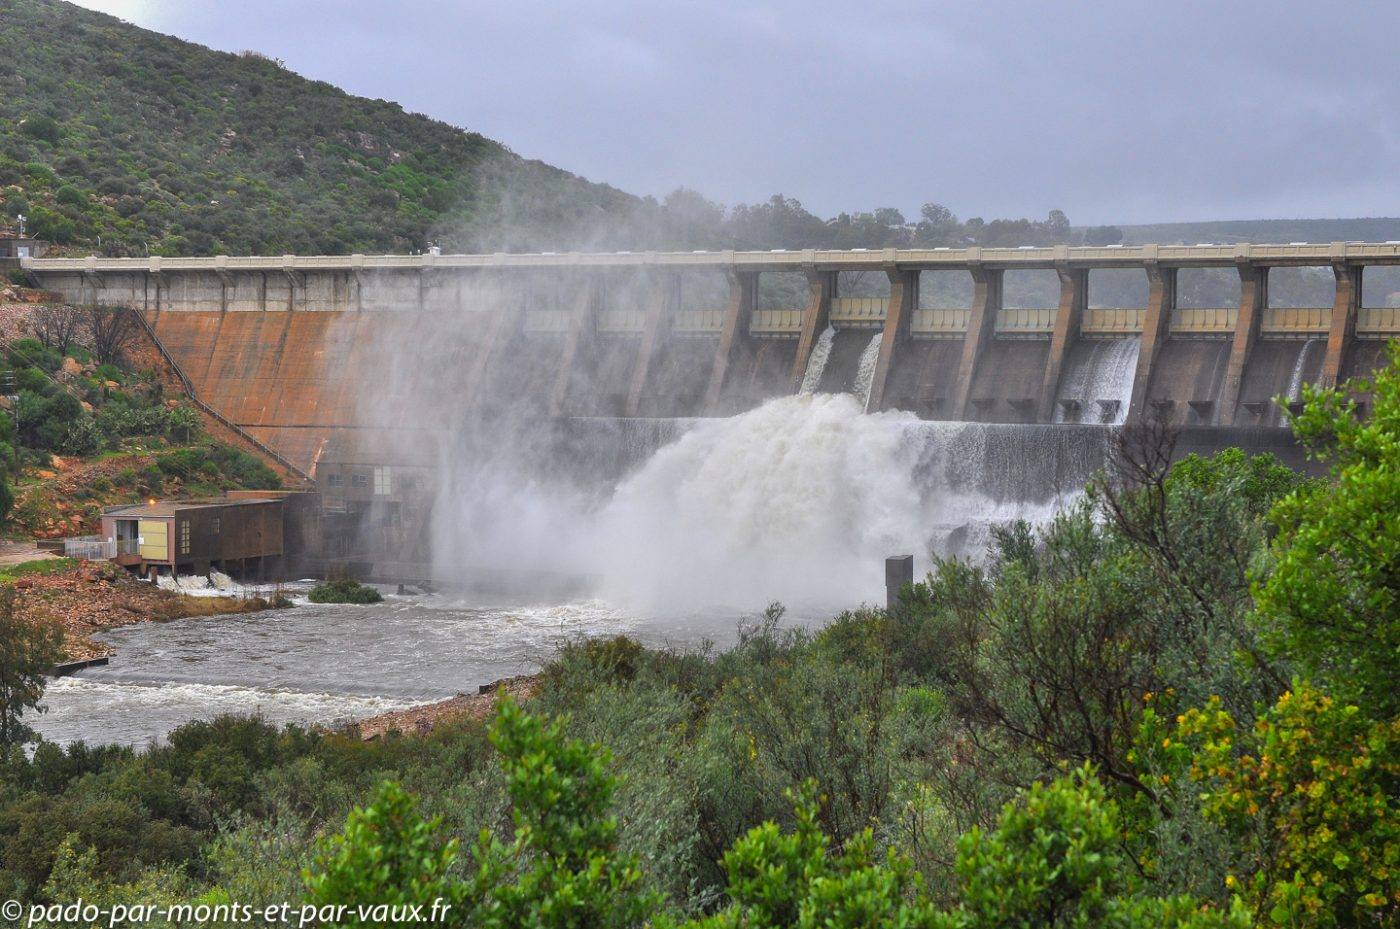 Clanwilliam barrage